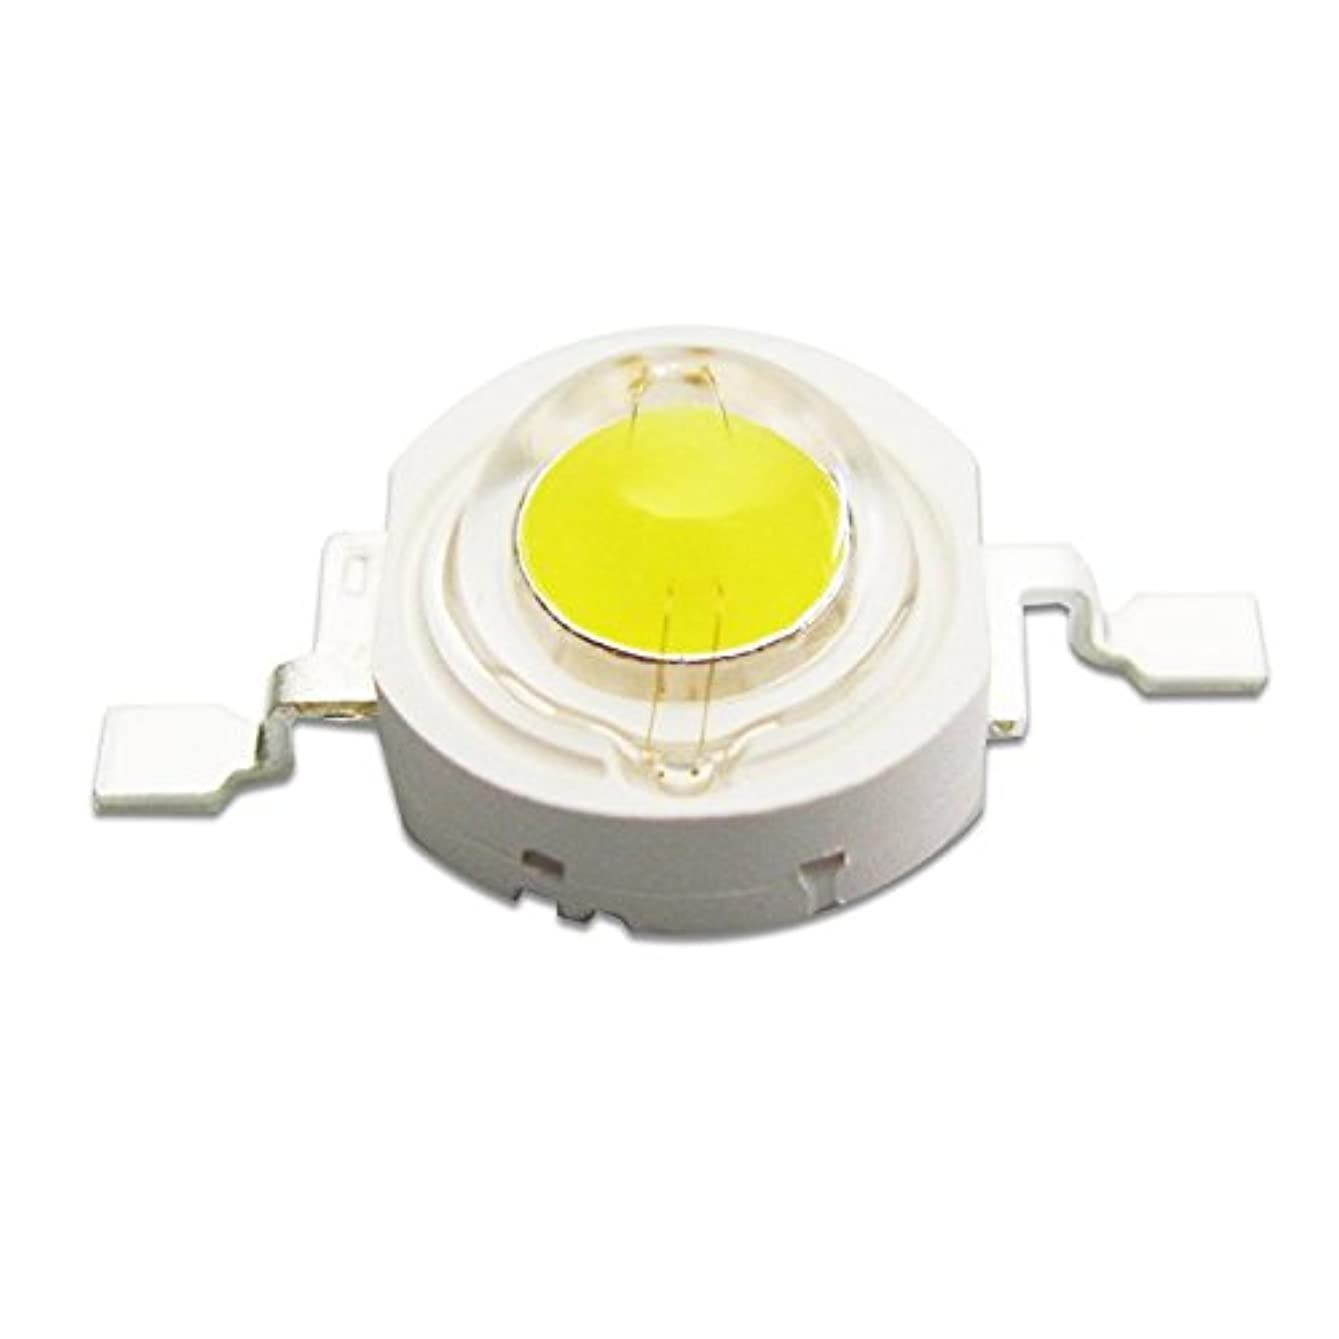 Infrared High Power 40Mil LED Diode Wavelength 850nm (20 Pack) onekkx165354